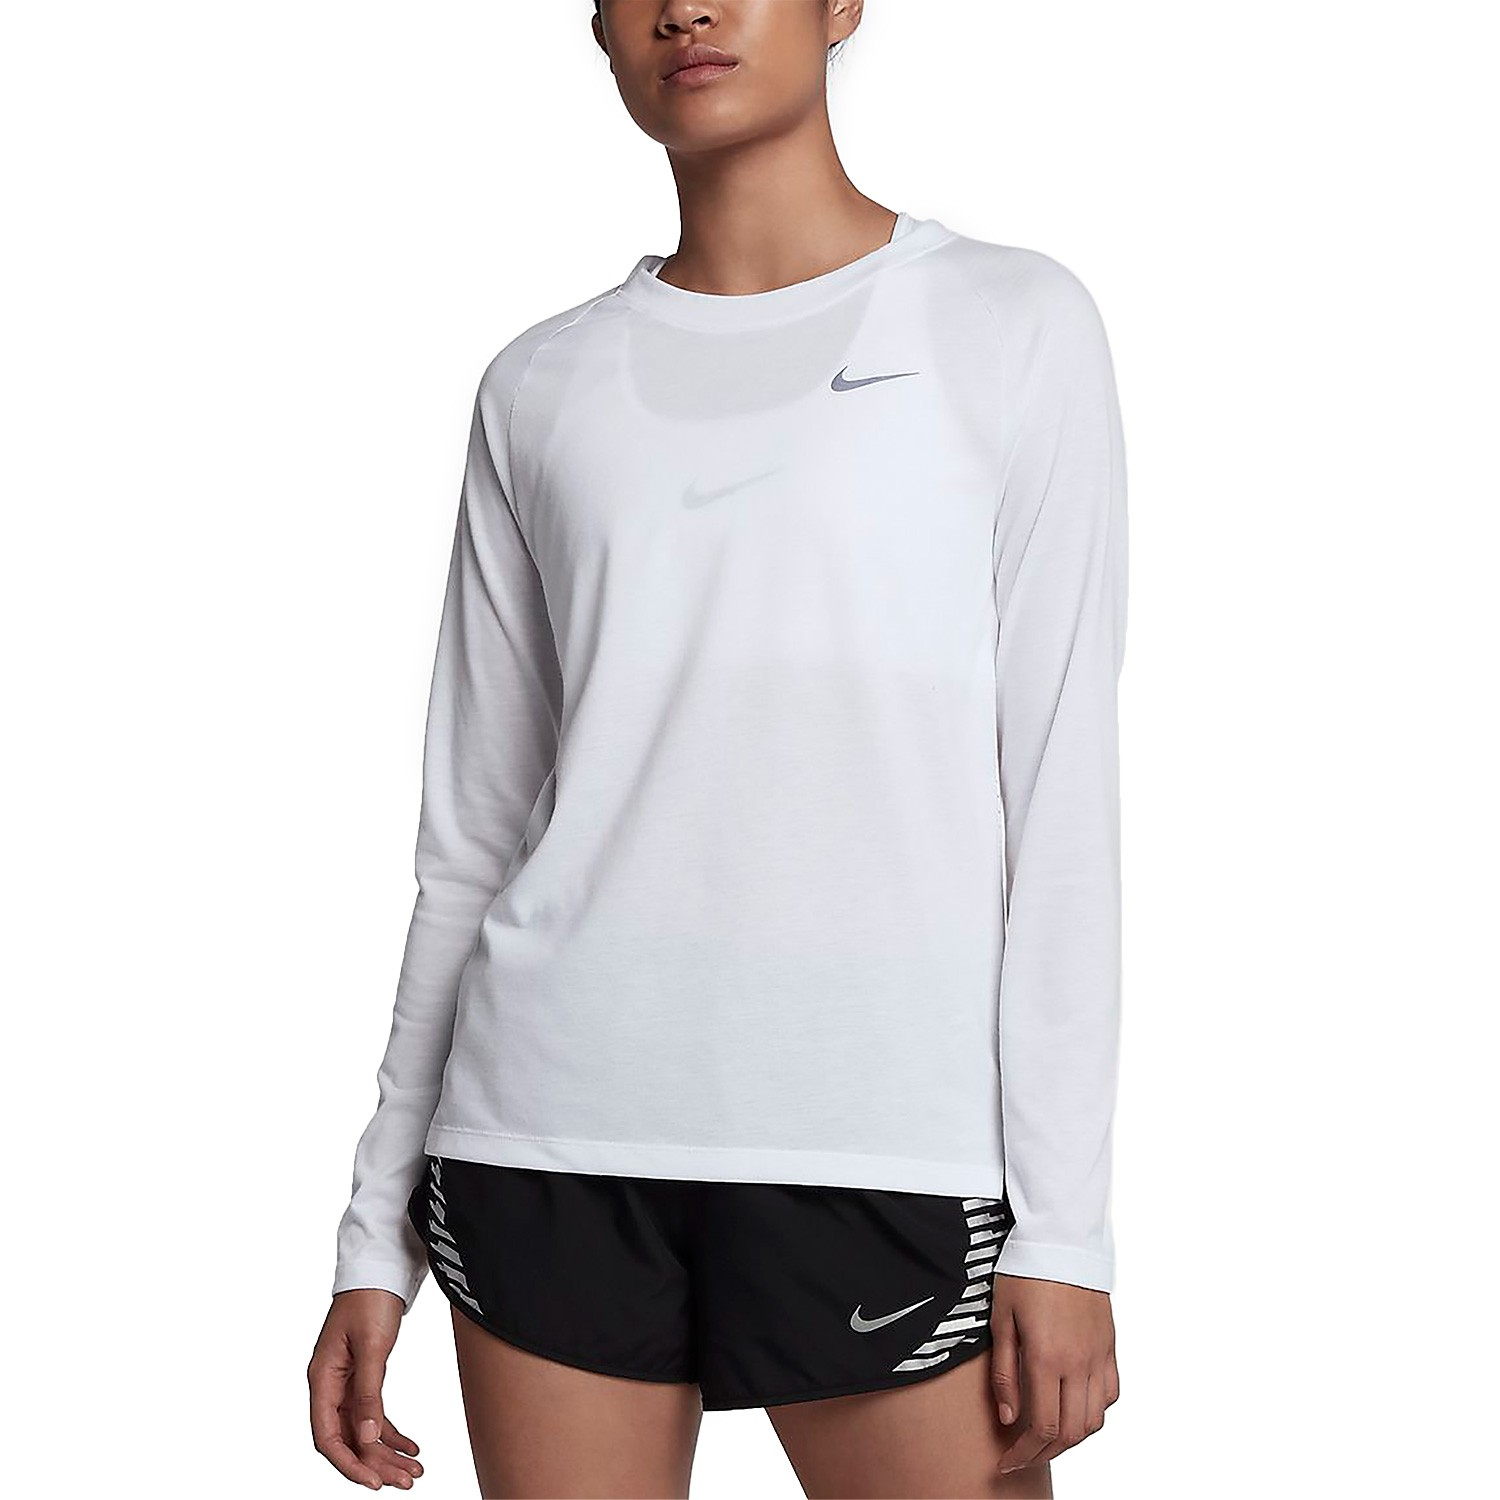 Nike Women's Tailwind Long-Sleeve Running Top